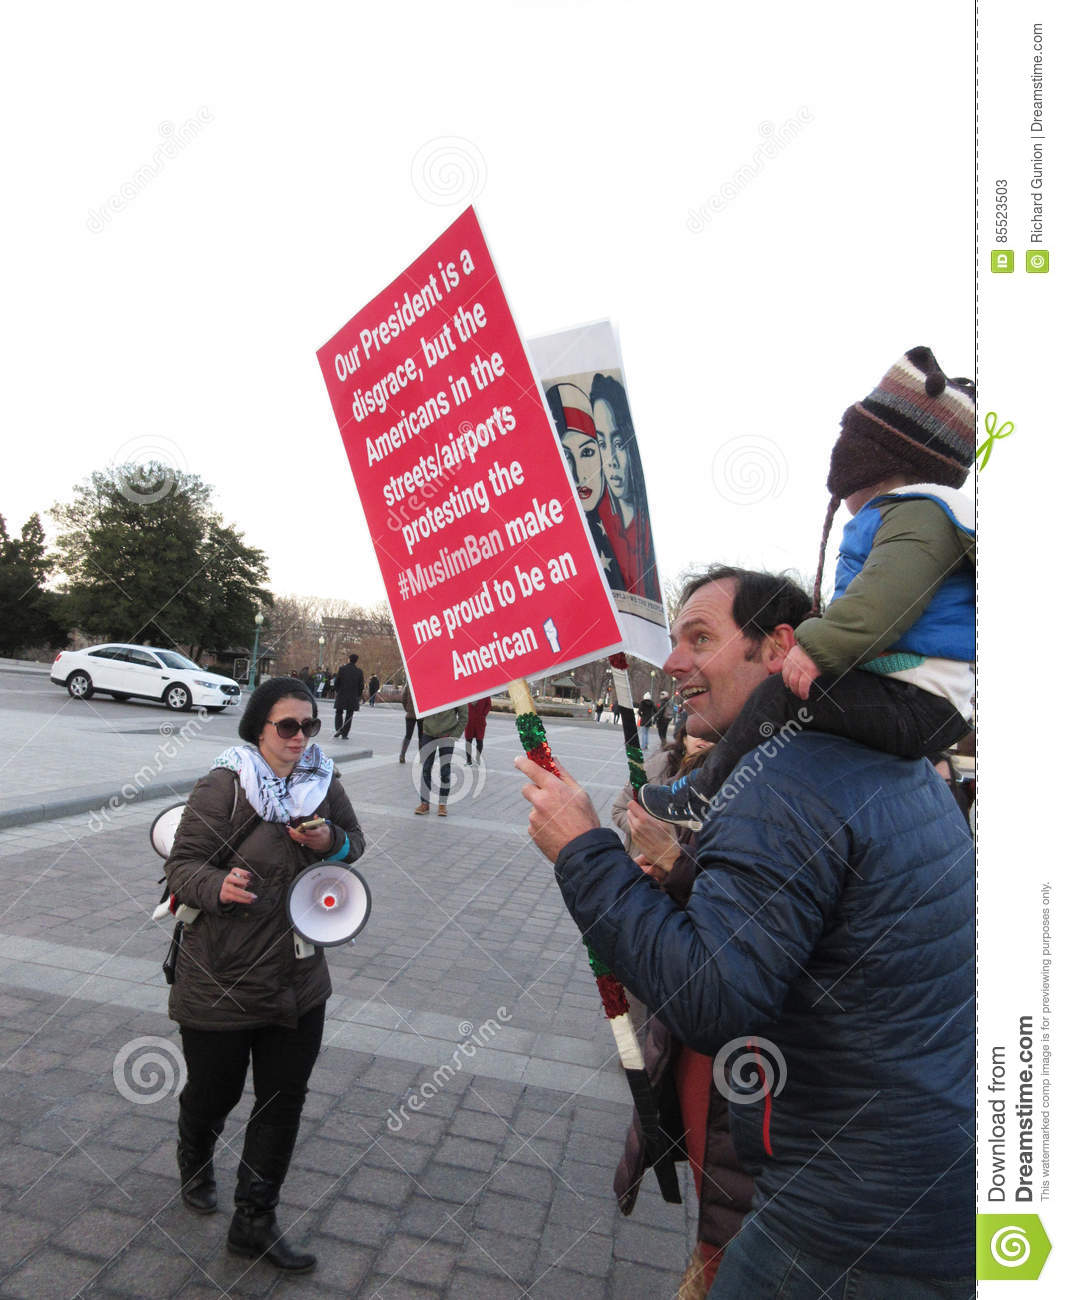 Protestataire fier